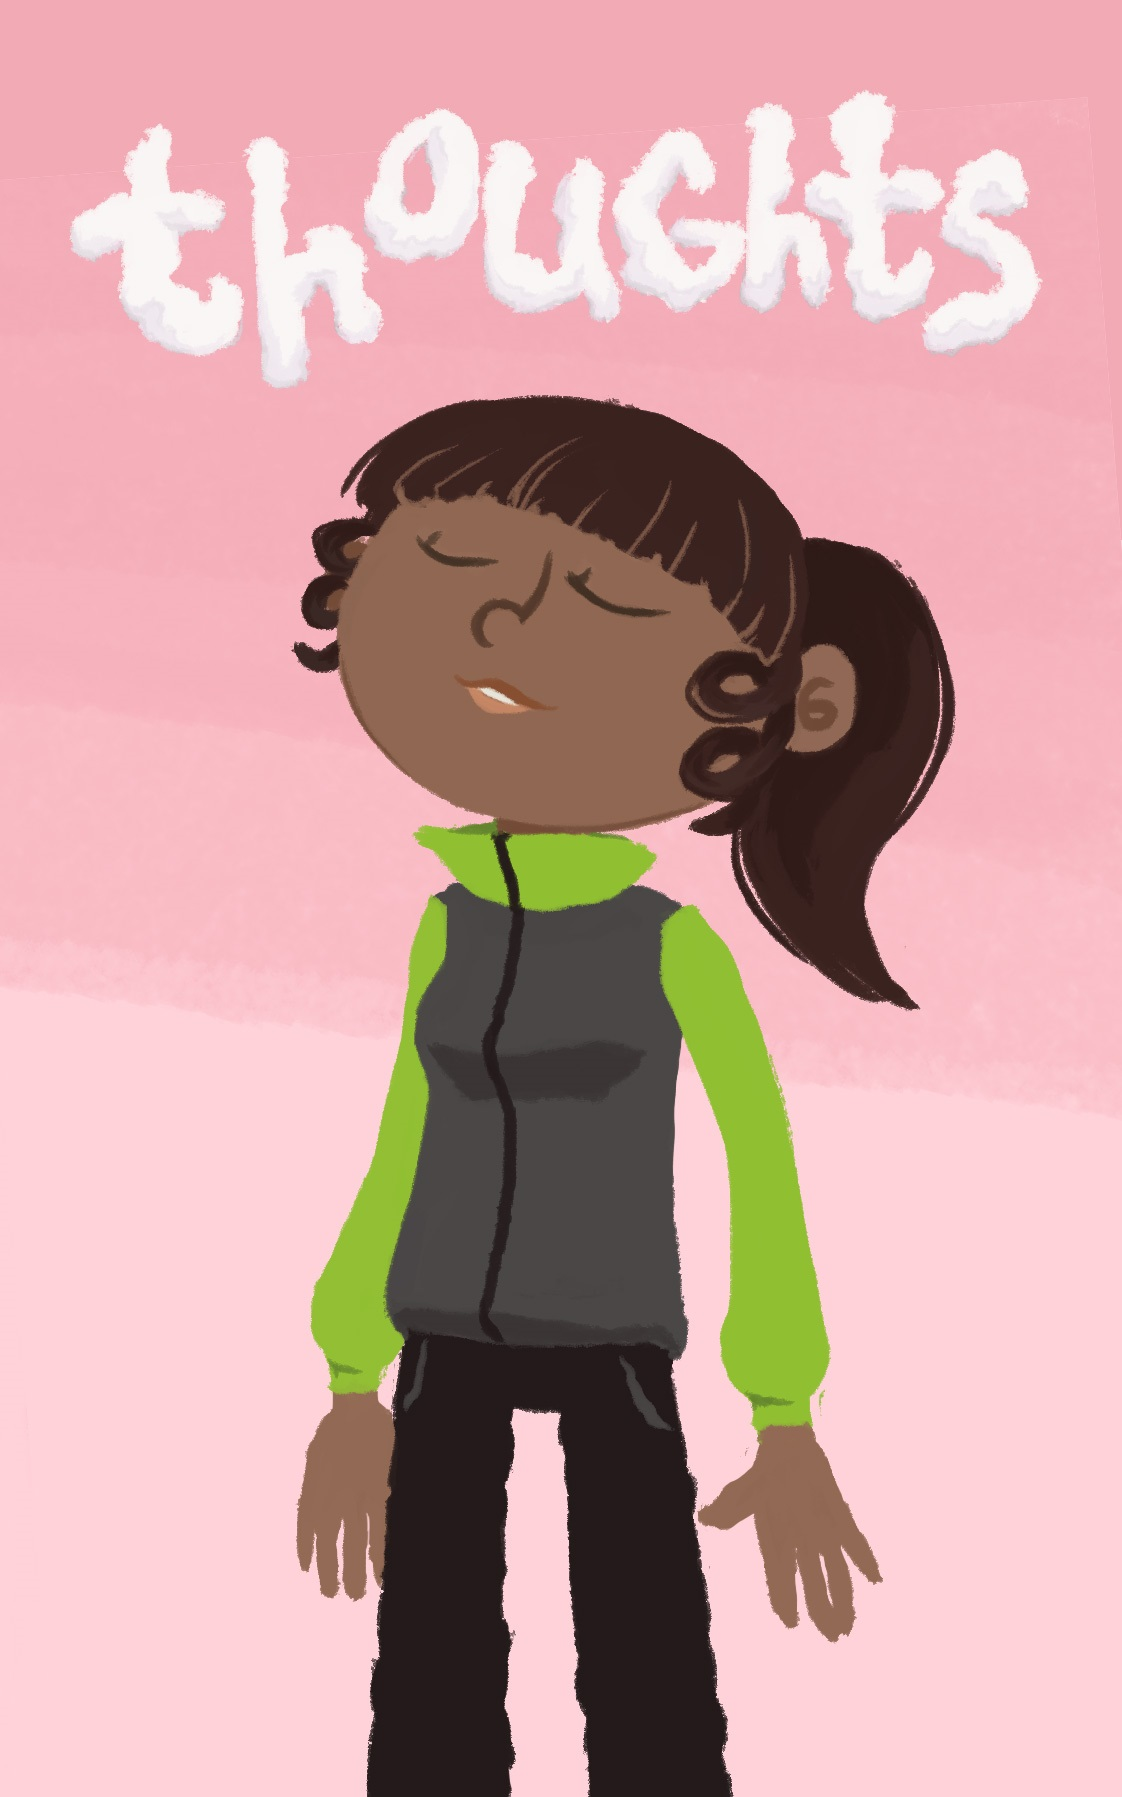 A Mindful Minute 3 Fun Mindfulness Exercises For Kids